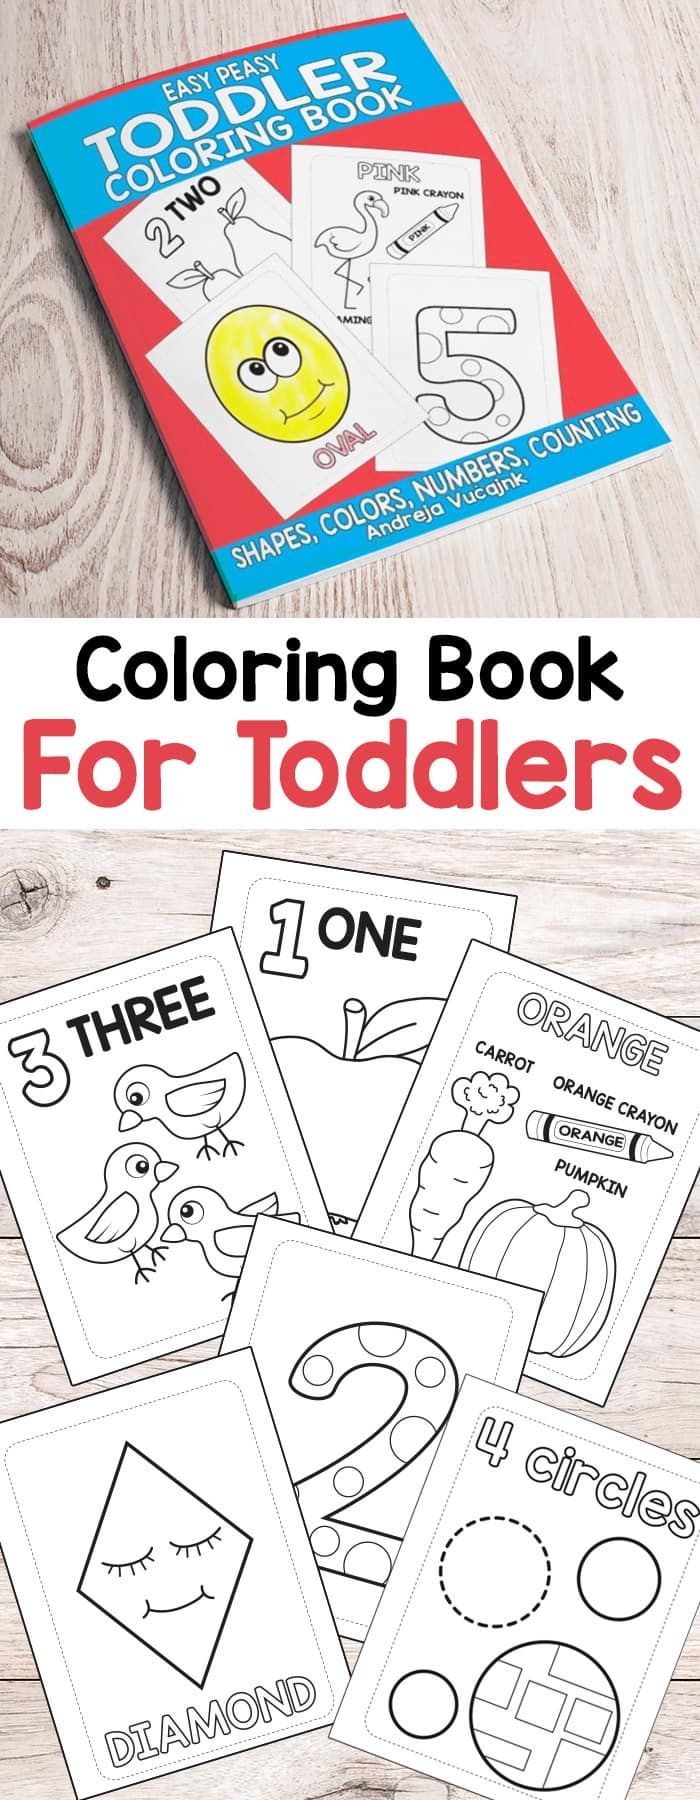 easy peasy toddler coloring book - Toddler Coloring Book